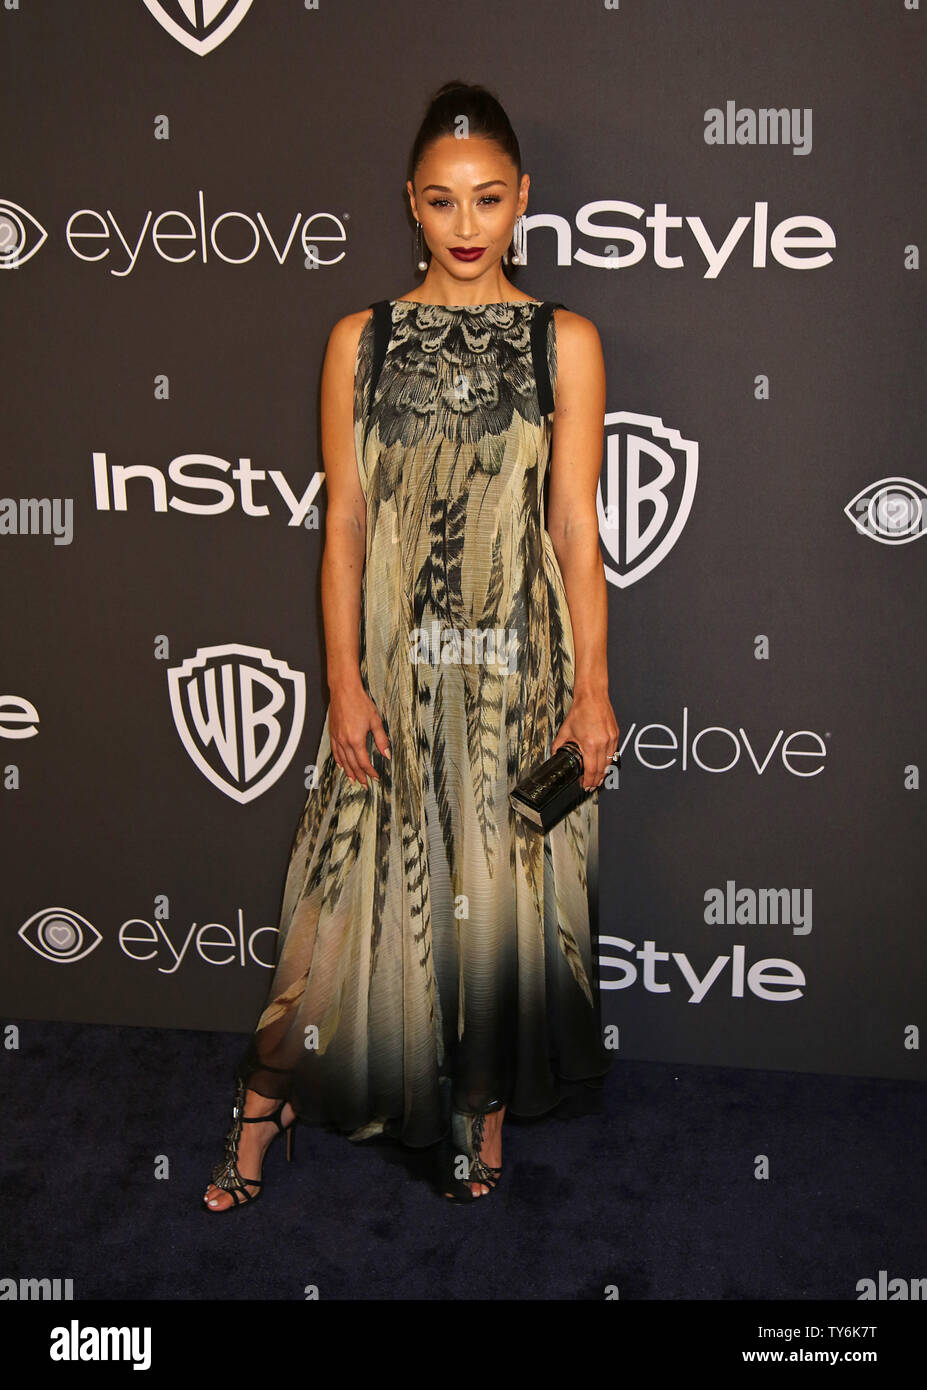 Cara Santana attends the 18th annual InStyle and Warner Bros. Golden Globe after-party at the Beverly Hilton Hotel in Beverly Hills, California on January 8, 2017.  Photo by David Silpa/UPI - Stock Image